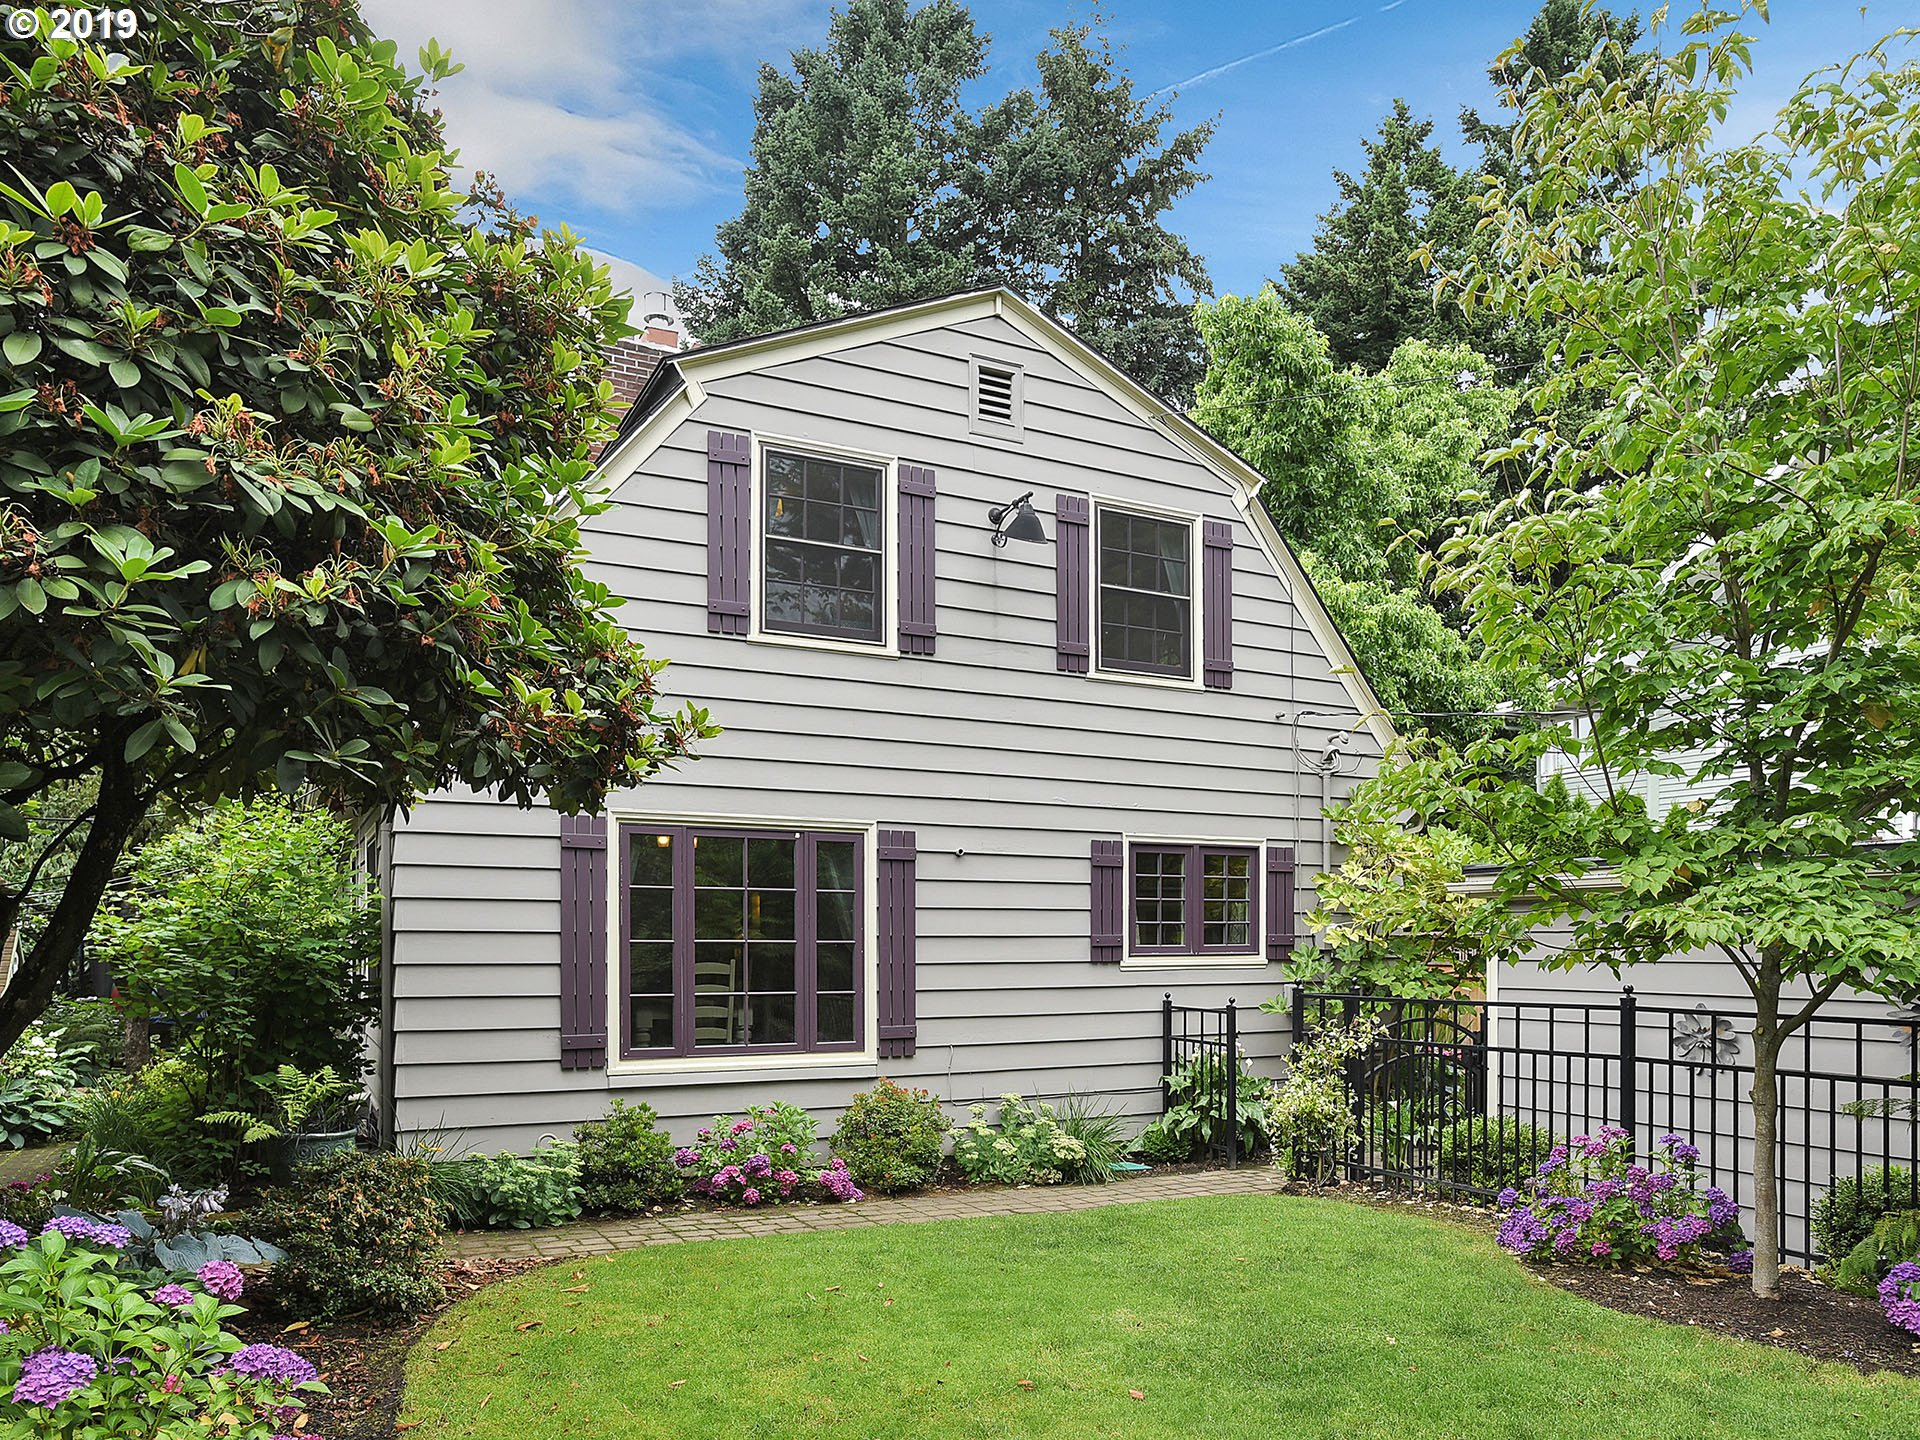 HANDSOME REMODELED DUTCH COLONIAL IN IRVINGTON. Stylish living in this historic hm. Features GOURMET CHEF'S KITCHEN, open flrplan w abundant light, MSTR SUITE ON THE MAIN, hrdwd flrs, 2 fireplaces, BSMNT FAMILY RM w extra tall beamed ceiling, private & quiet fncd yrd, sngl garage. Full remodel in 2005. Recent updates incl new windows/doors, insulation, water htr. AWESOME LCTN NR SHOPS, RESTRNTS, PARKS & SCHOOLS. MINS TO DWNTWN!